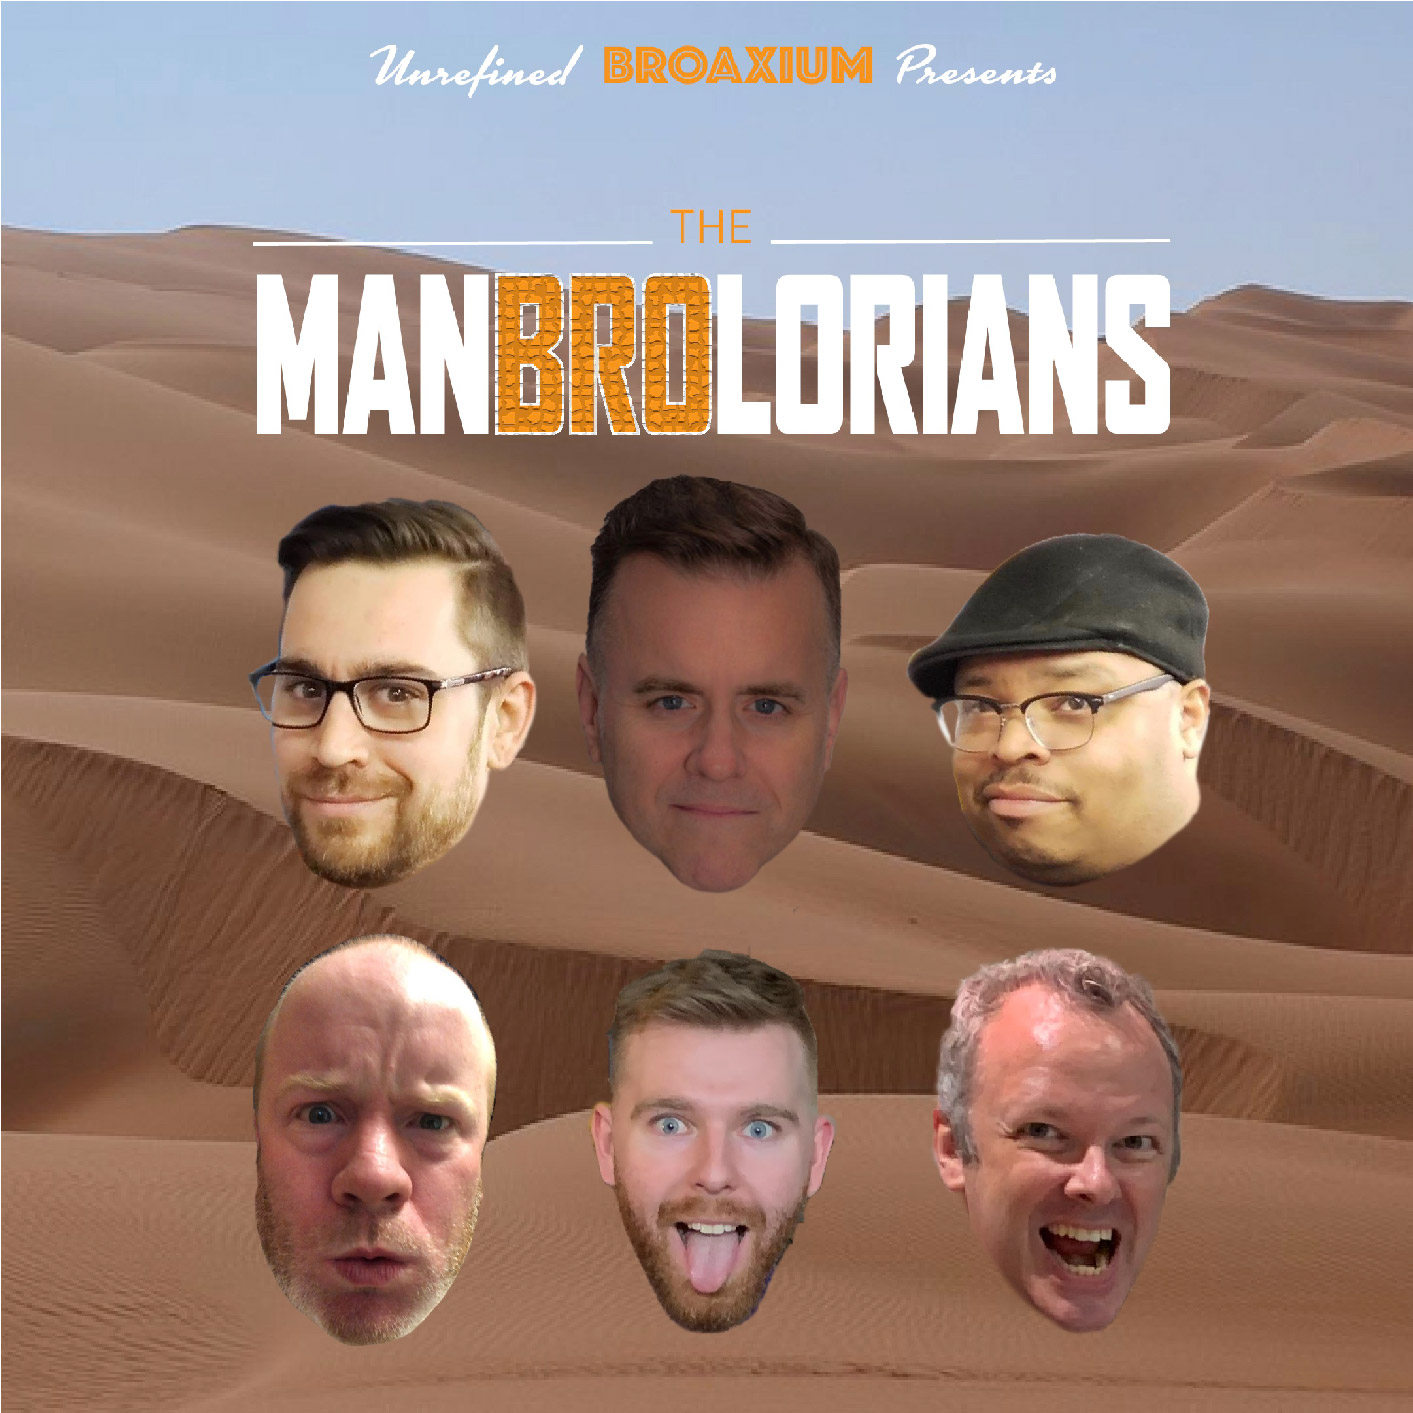 The MANBROLORIANS: Chapter Five